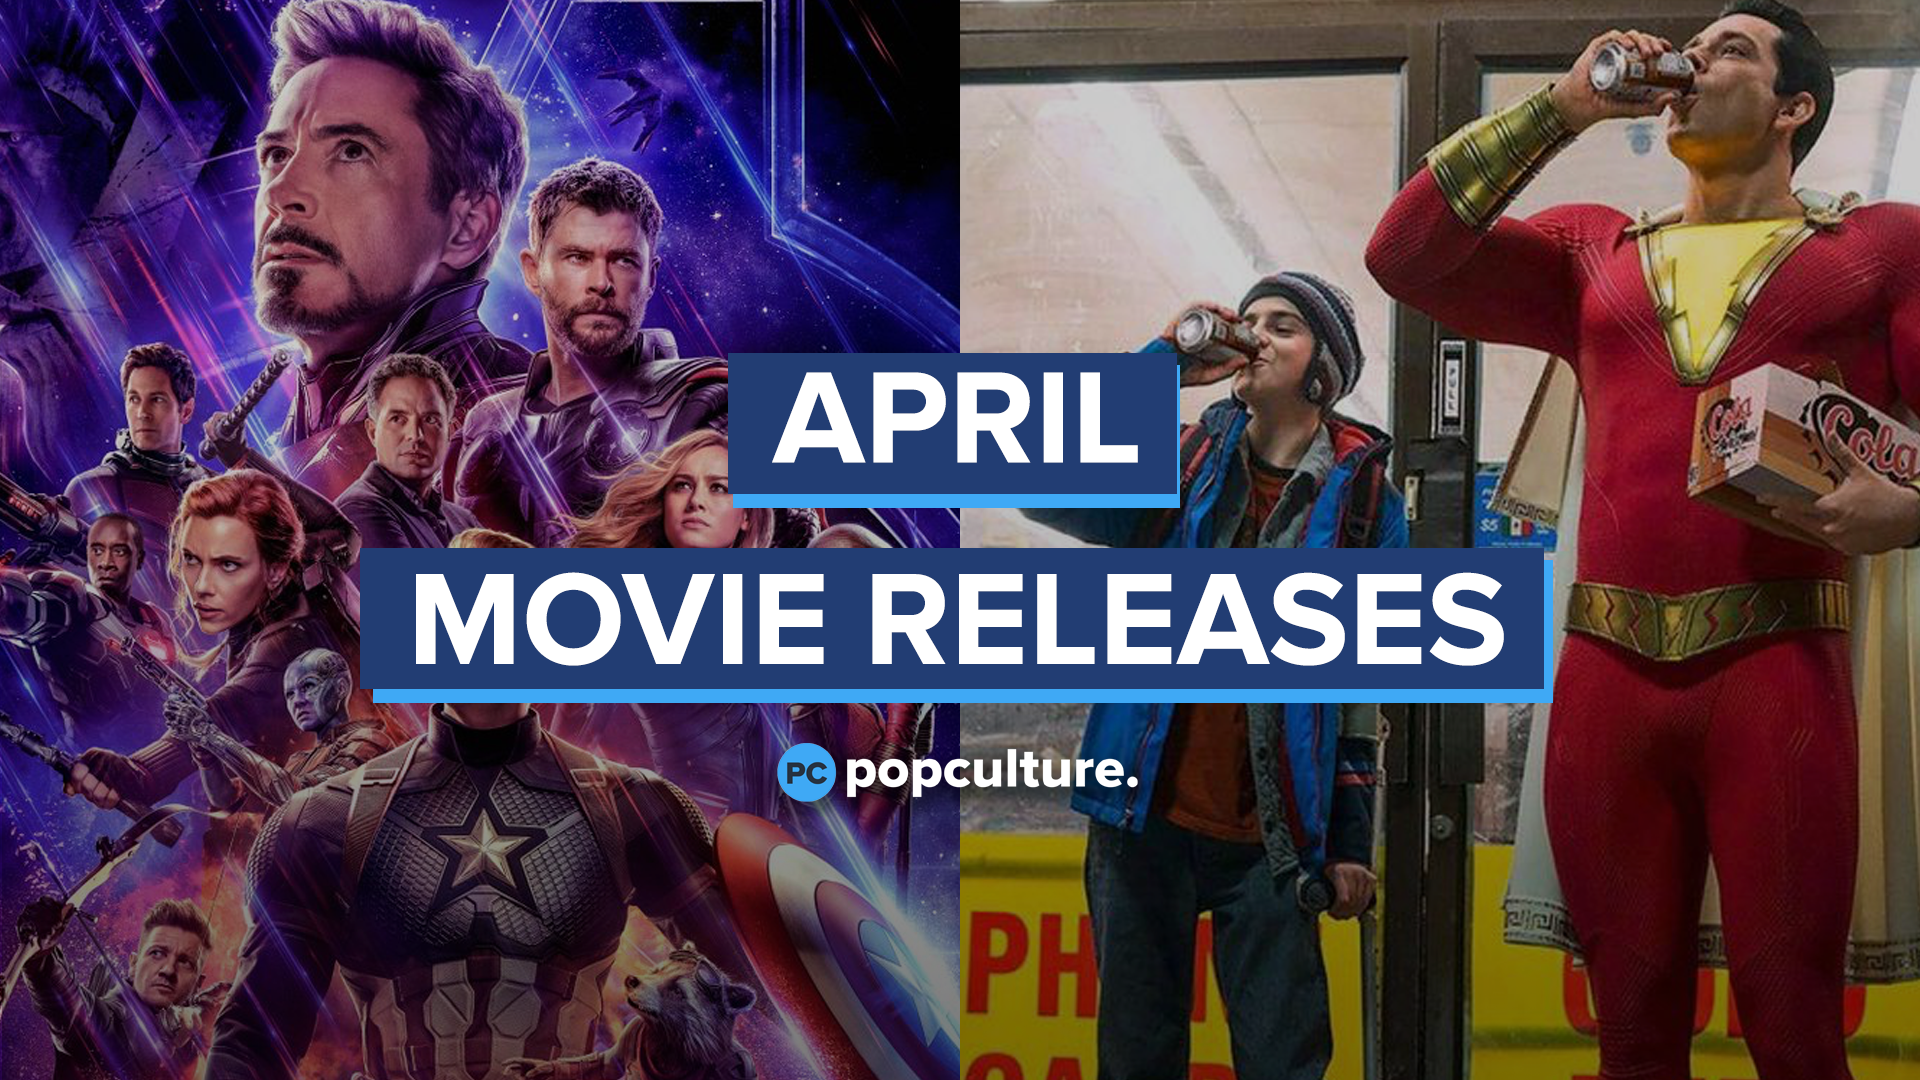 April 2019 Movie Releases screen capture